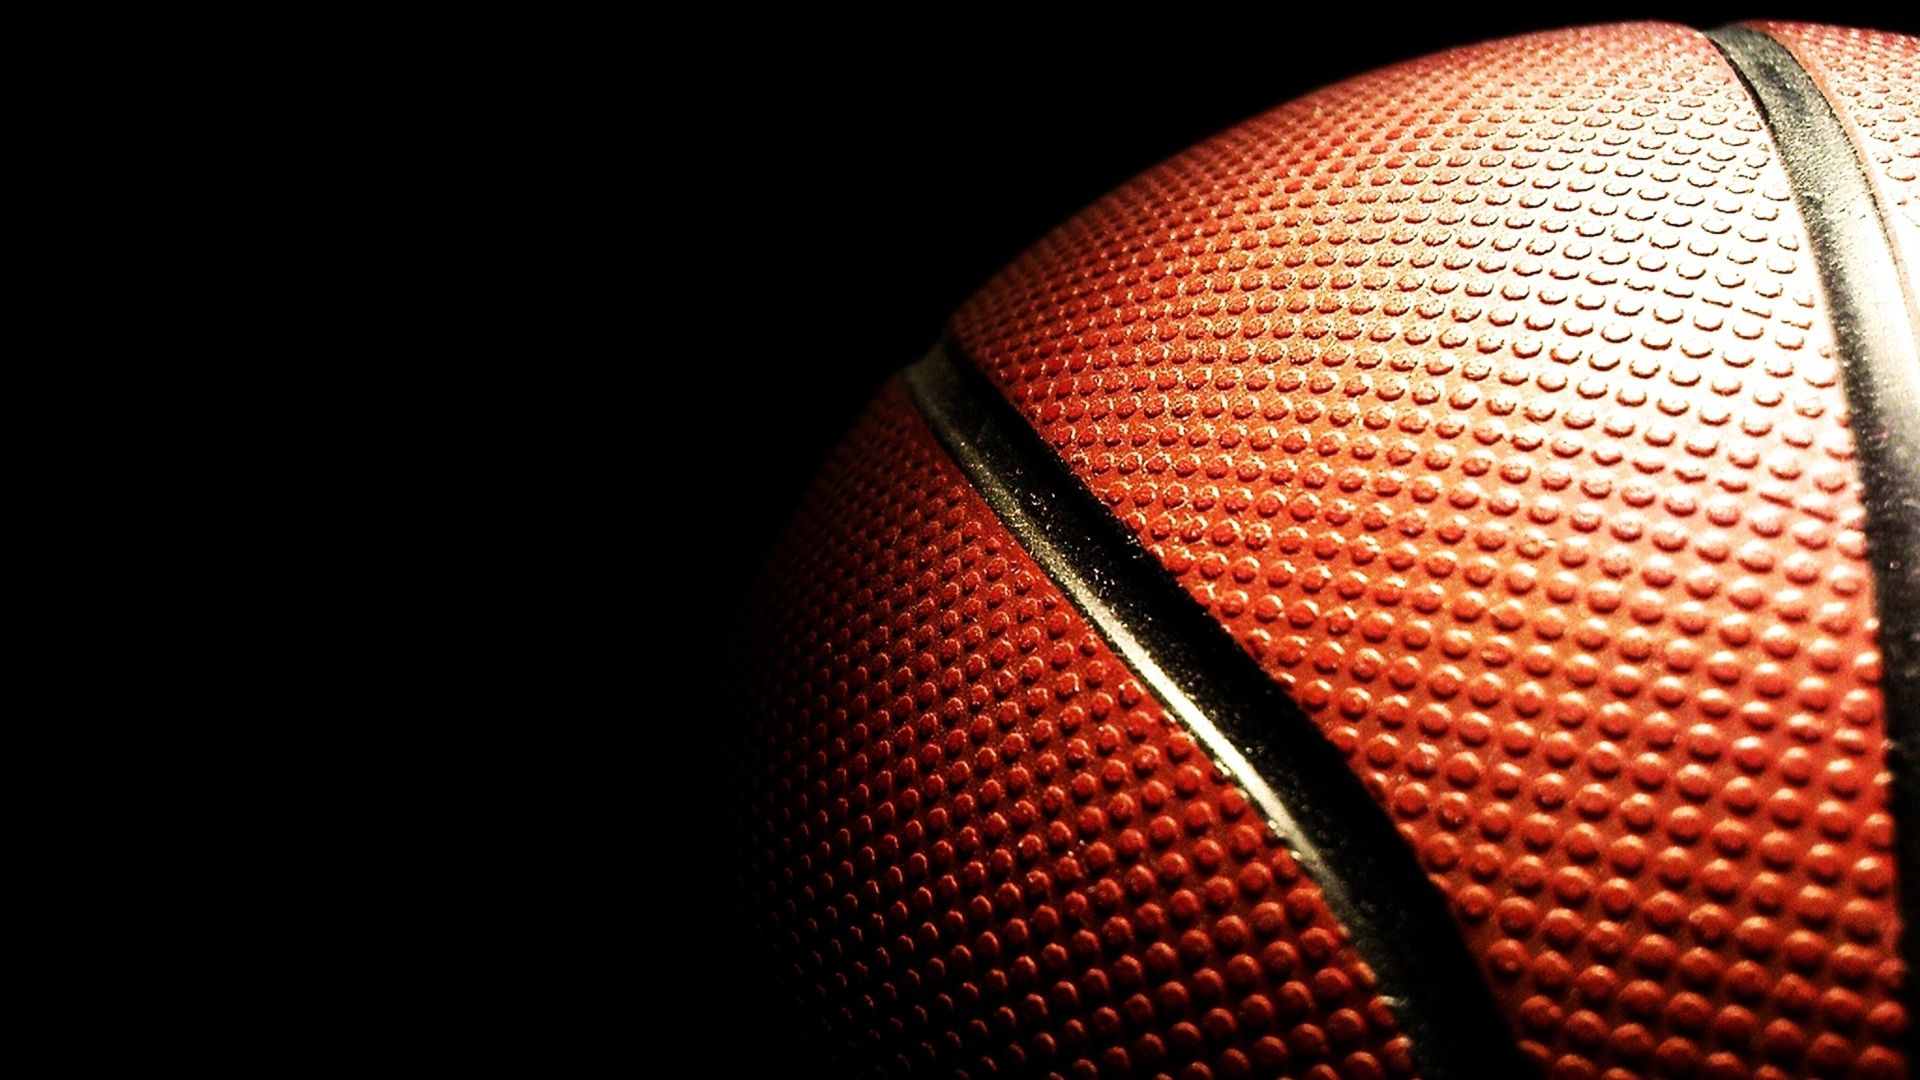 Basketball Photos Basketball High Definition Wallpapers Hd Wallpapers Basketball Background Basketball Wallpaper Basketball Ball